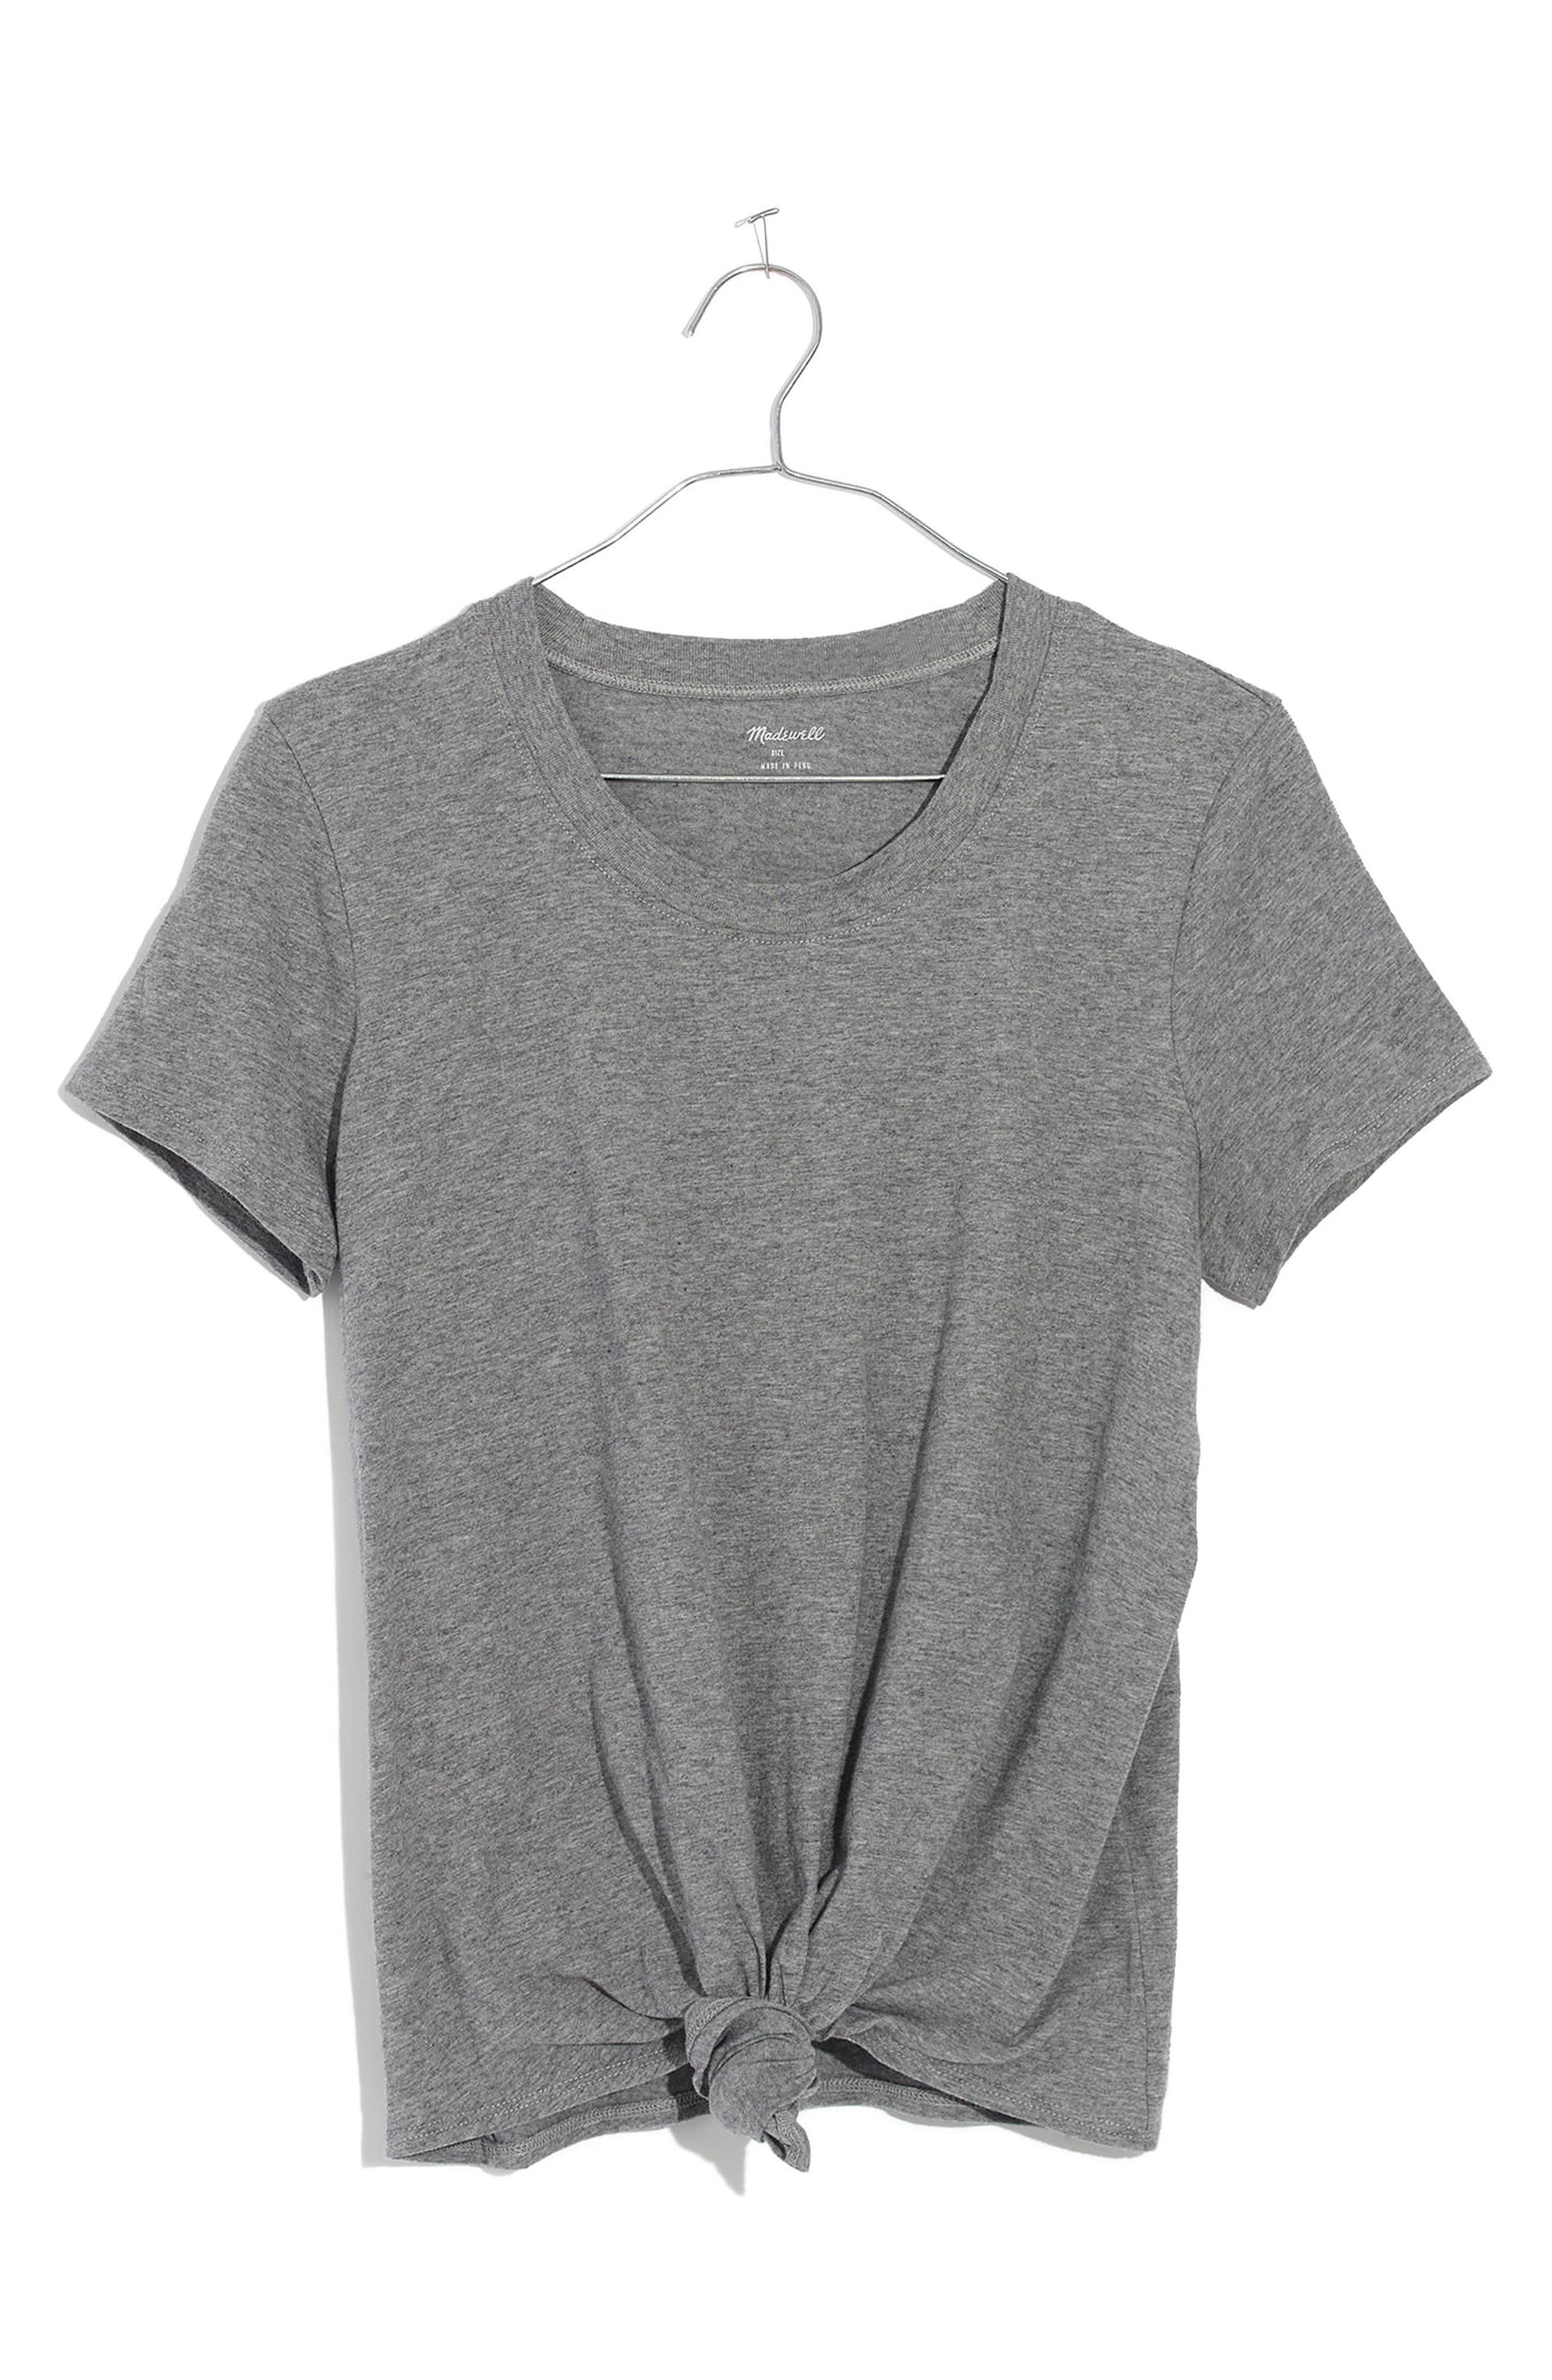 Knot Front Tee,                             Alternate thumbnail 7, color,                             HEATHER SHALE